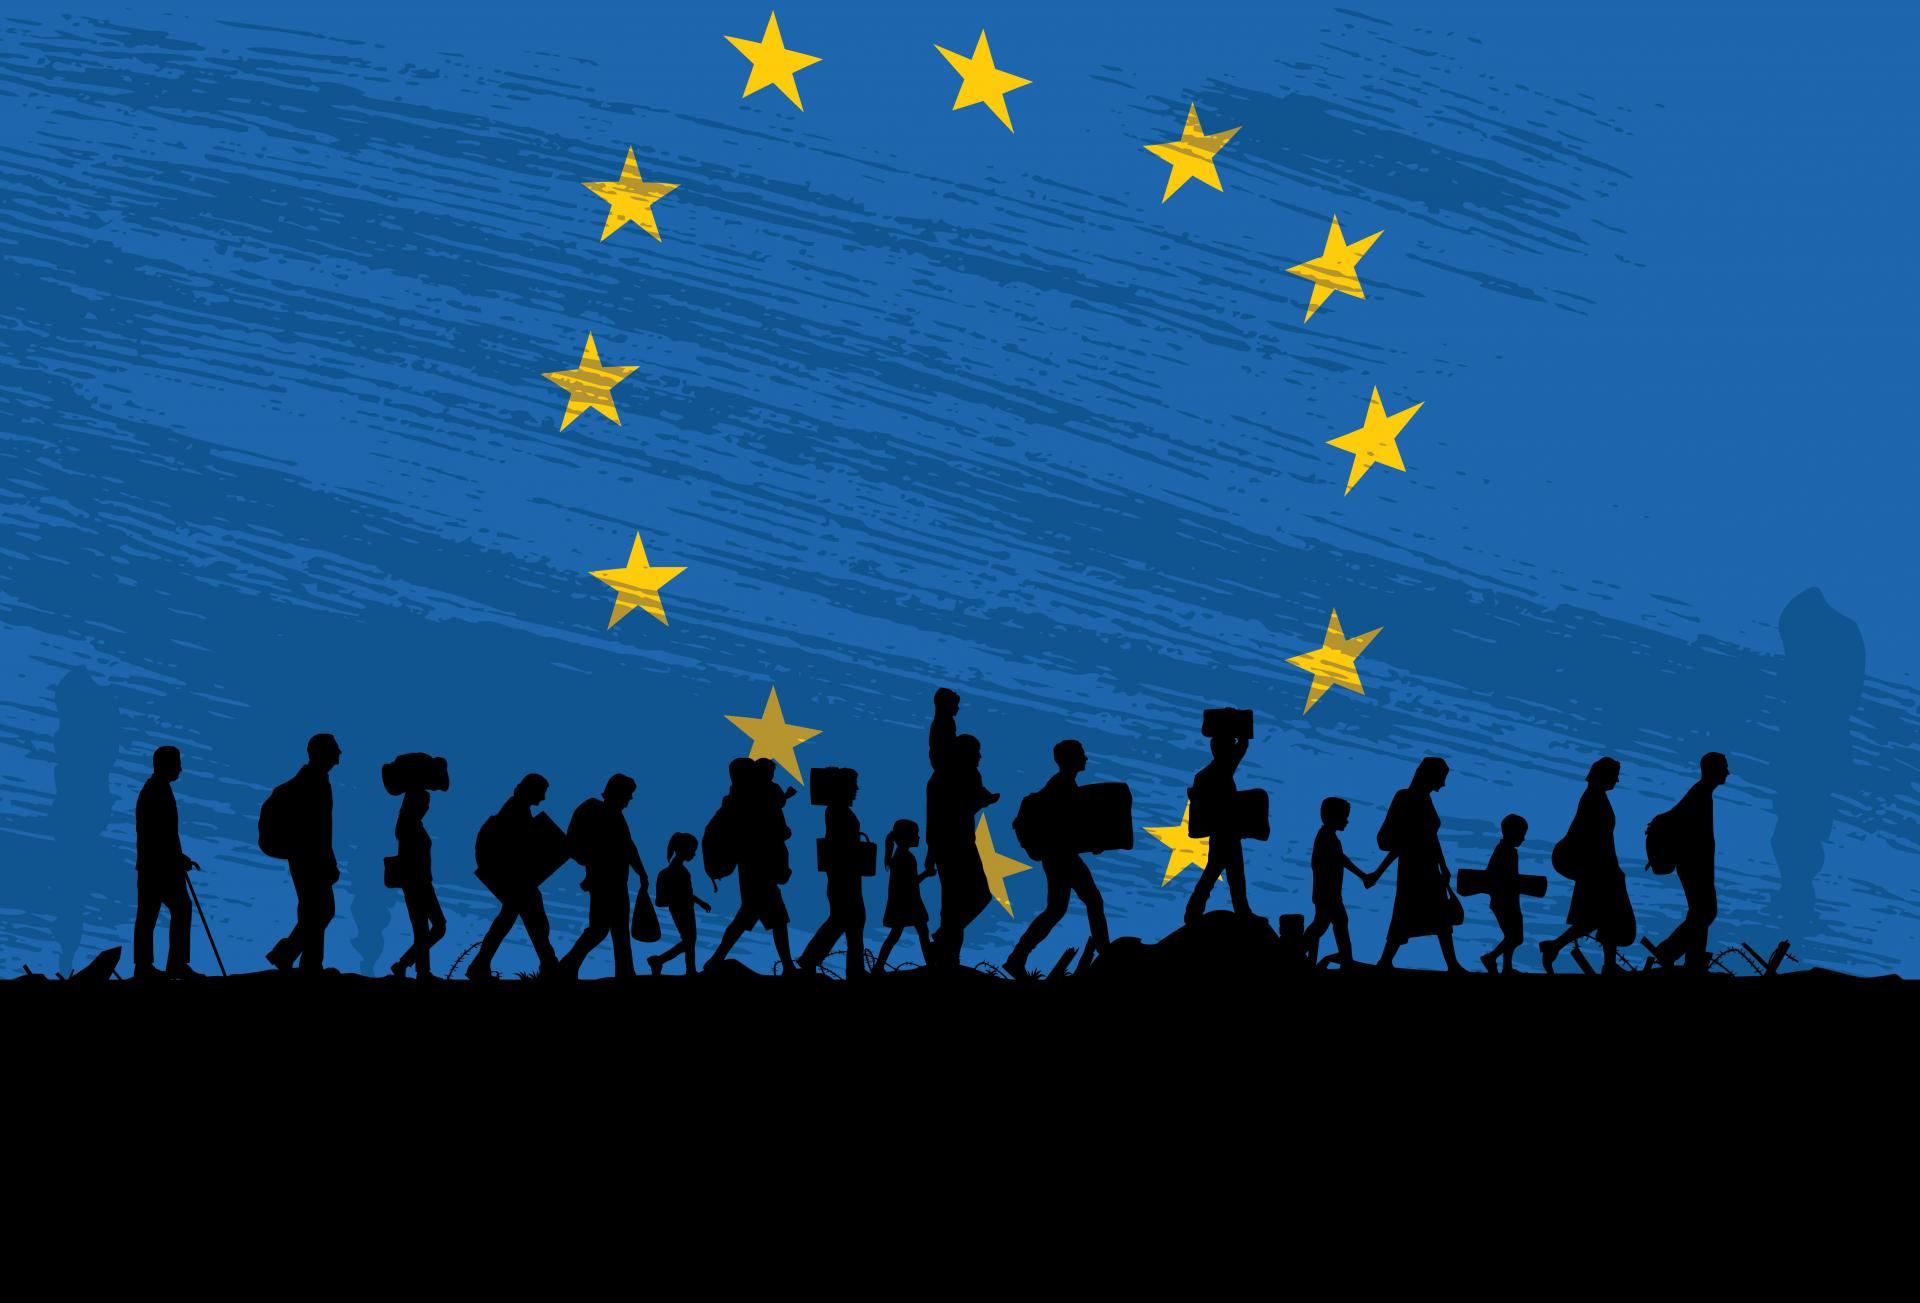 European flag with silhouette of refugees walking across it